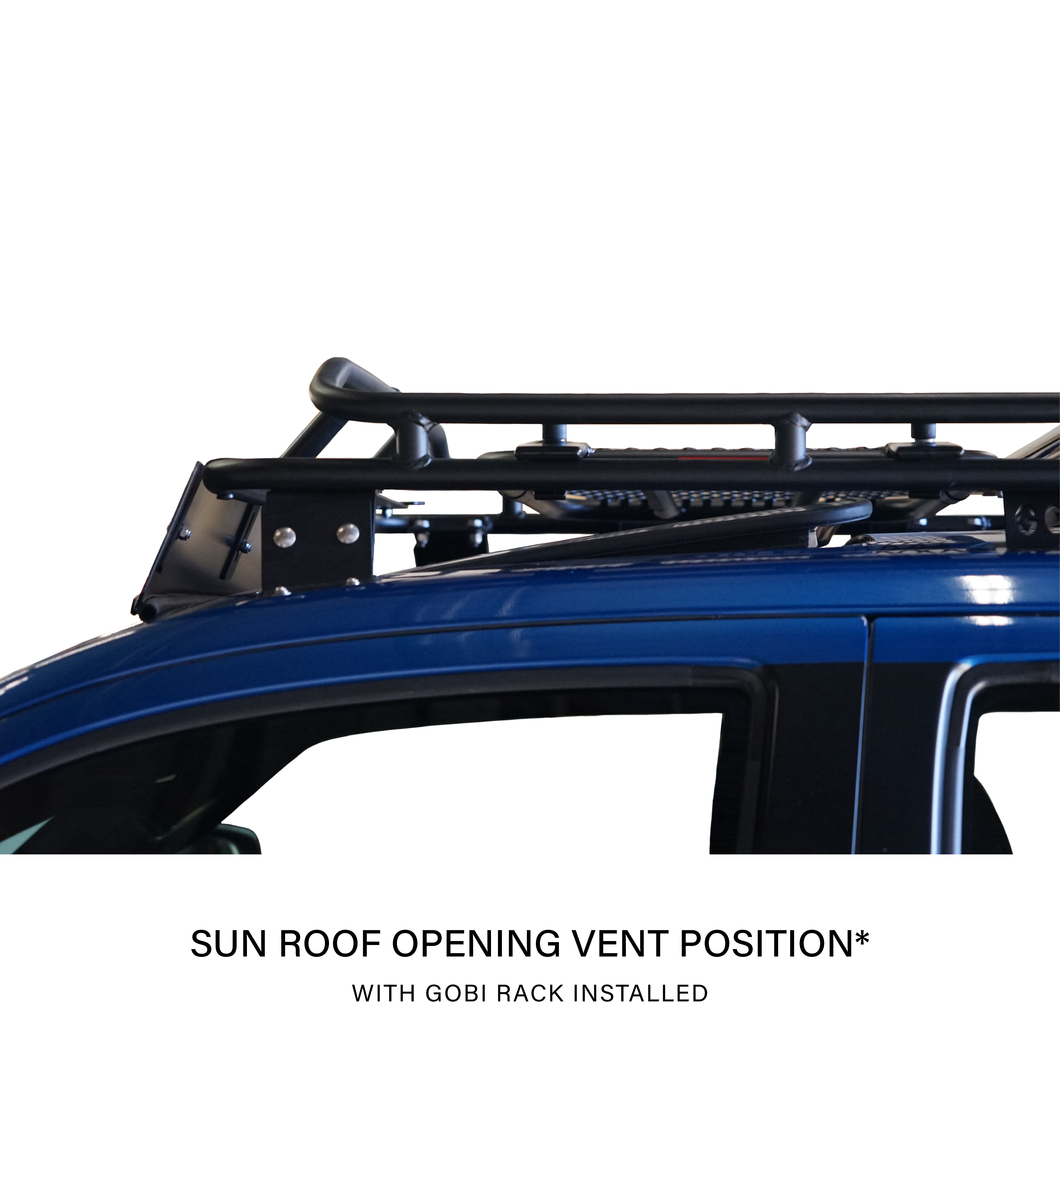 Gobi - Ranger Rack - Multi Light Set Up - No Sunroof - Toyota 4Runner 5th Gen 2010-2021 - 4x4 Runners